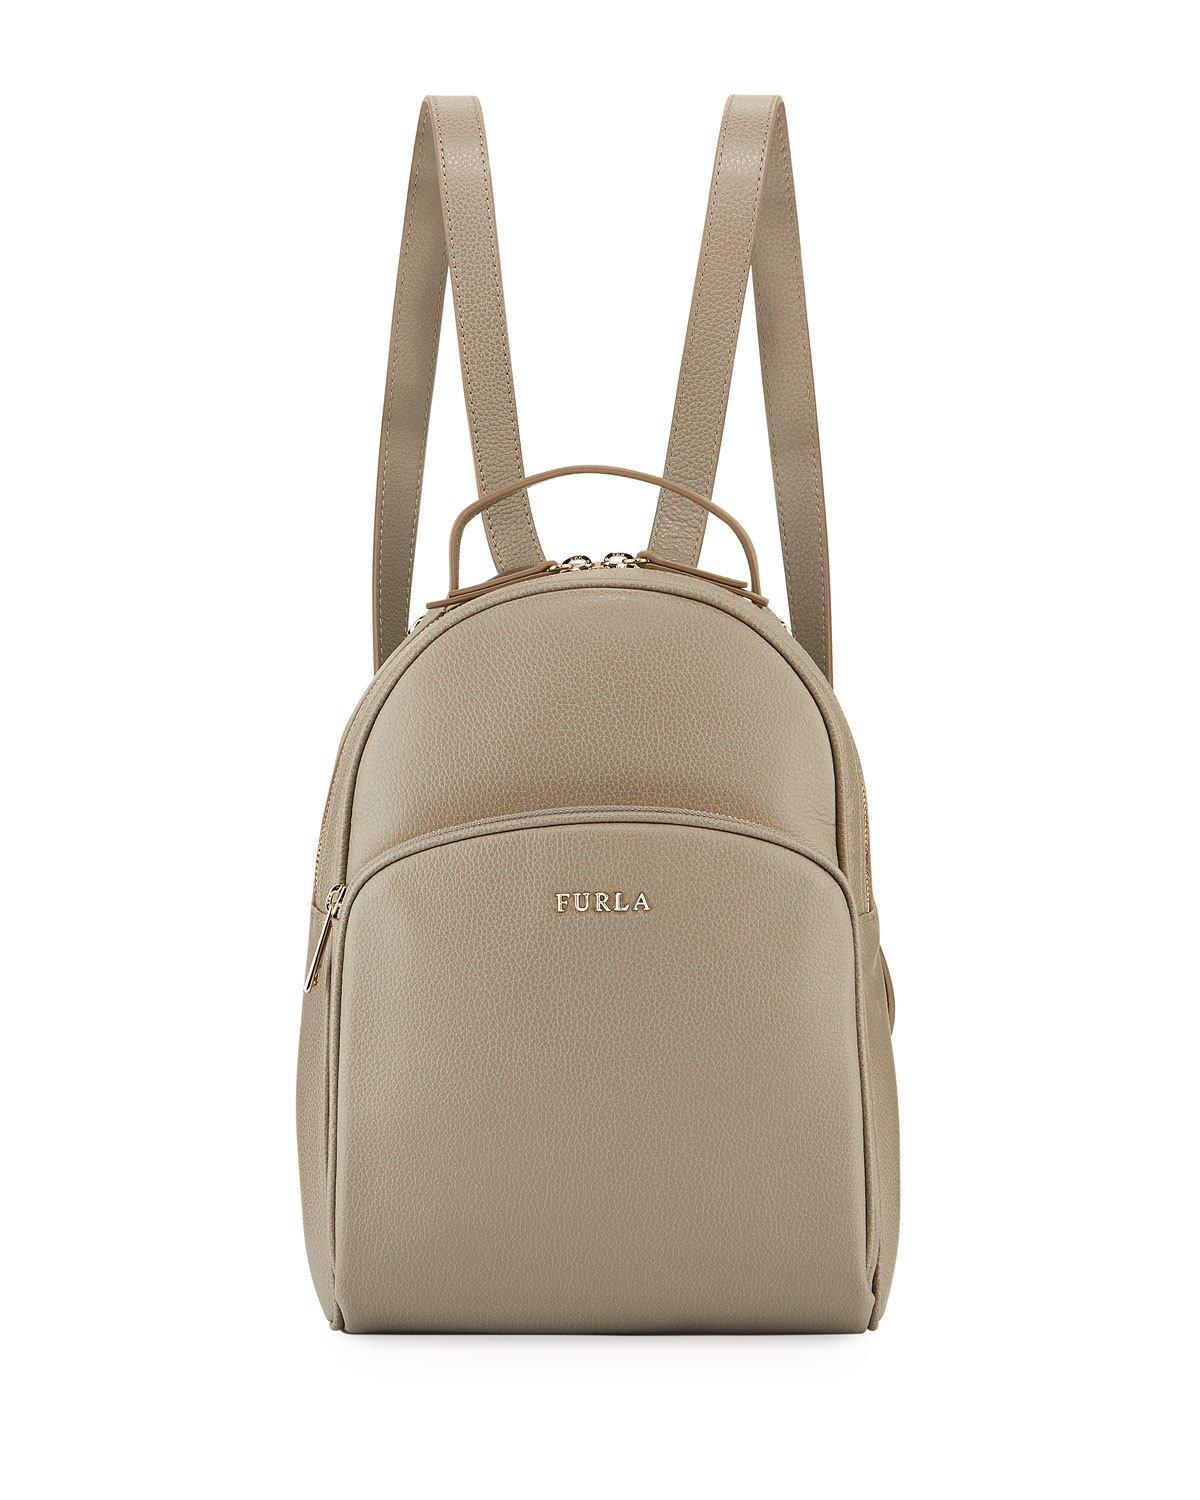 77d34a9af0ae Furla Frida Medium Vitello Leather Backpack